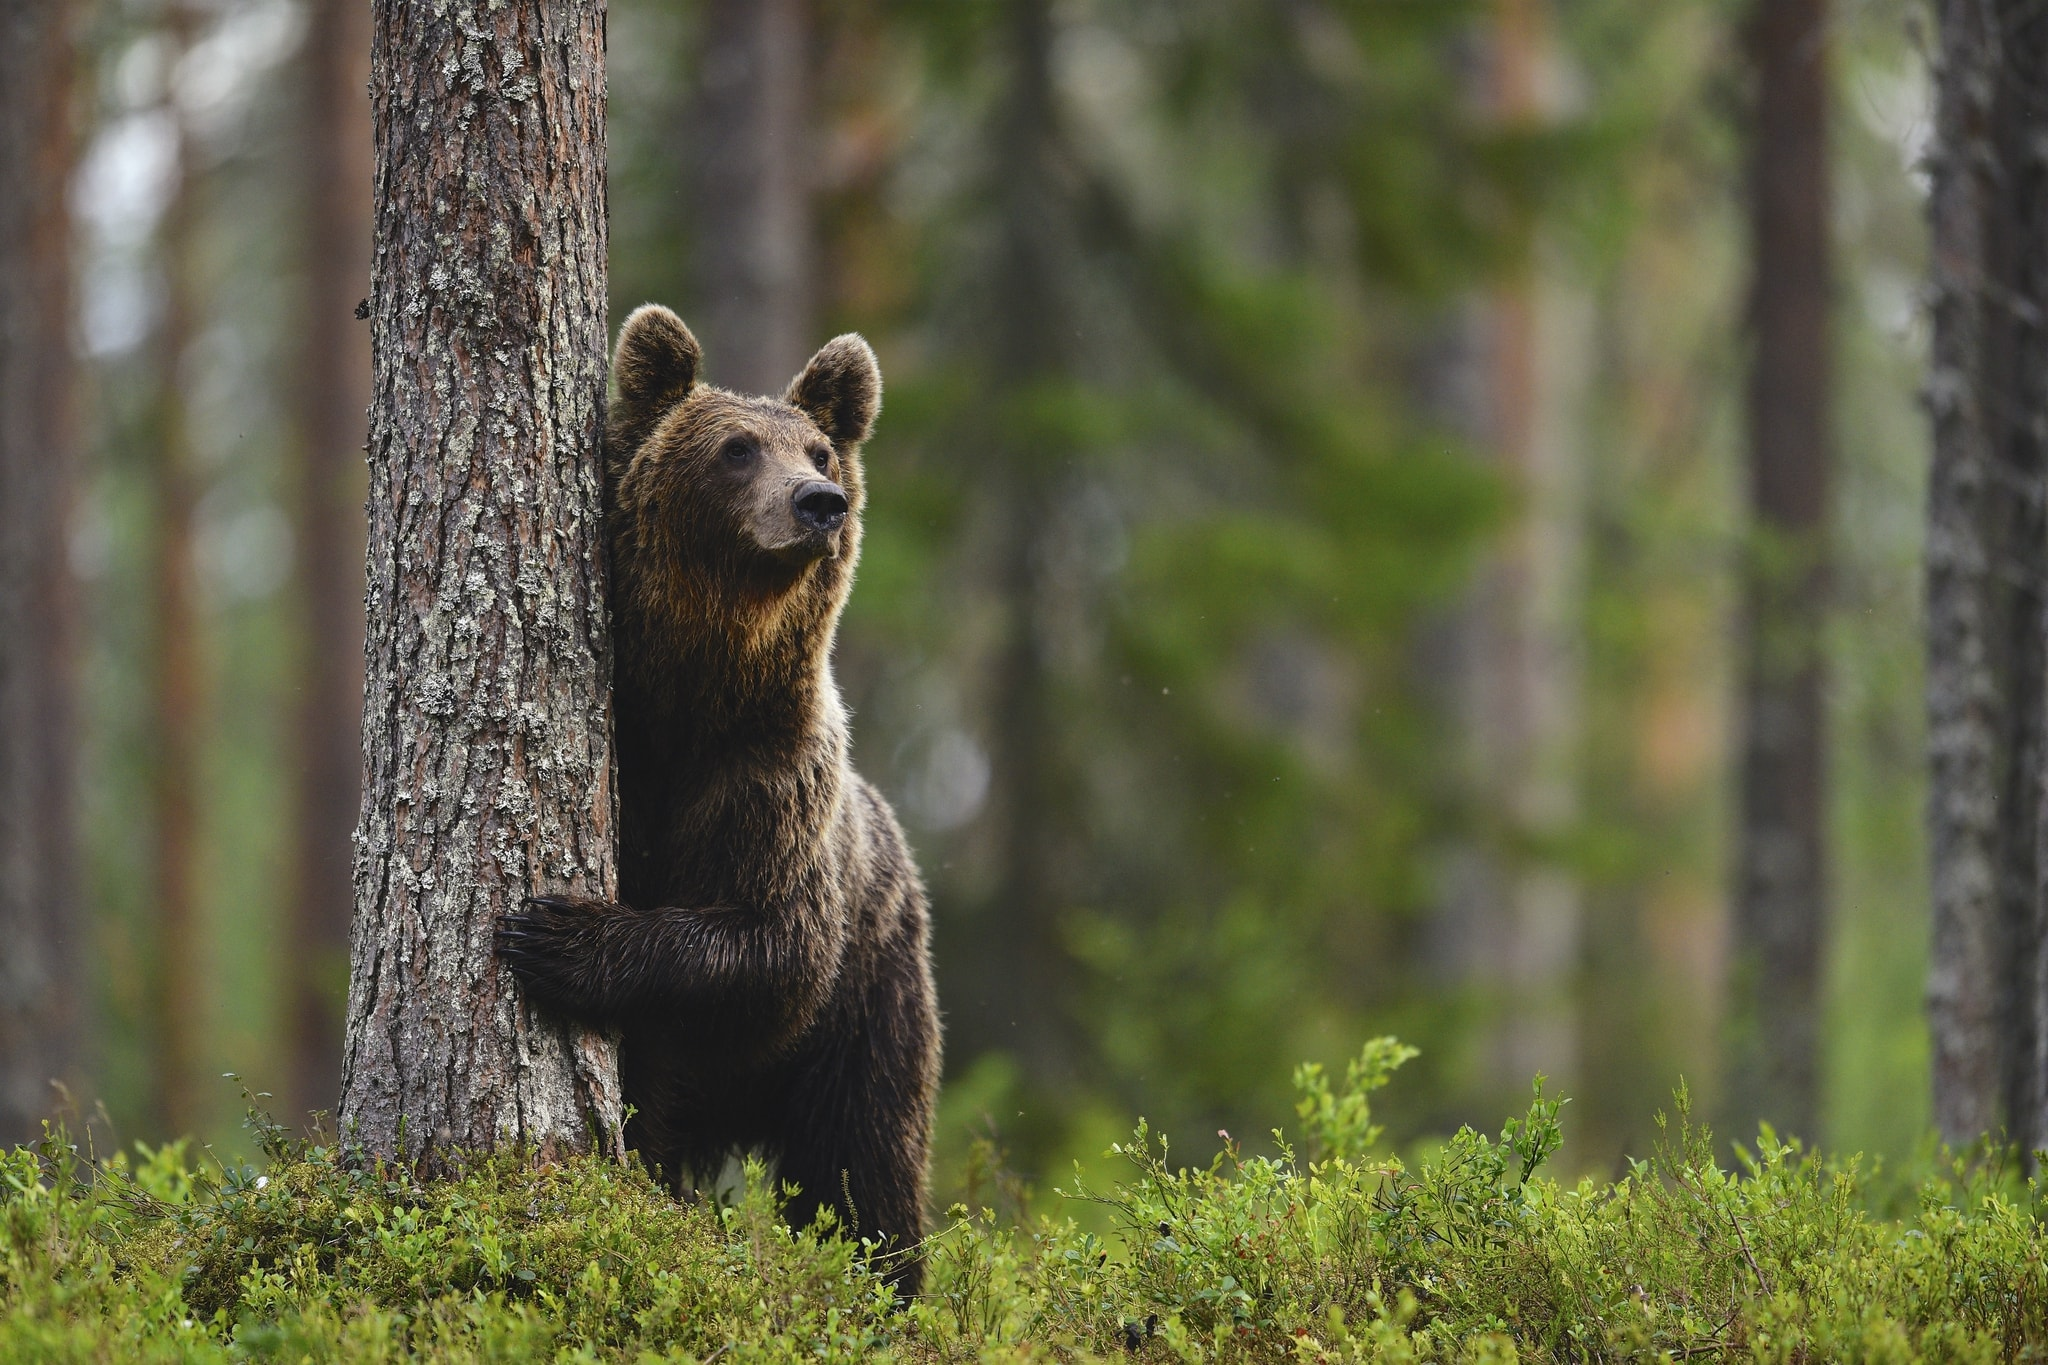 One of the large male bears pauses in front of the photographic hides photographed during the Majestic Brown Bears Cubs of Finland Photography Holiday